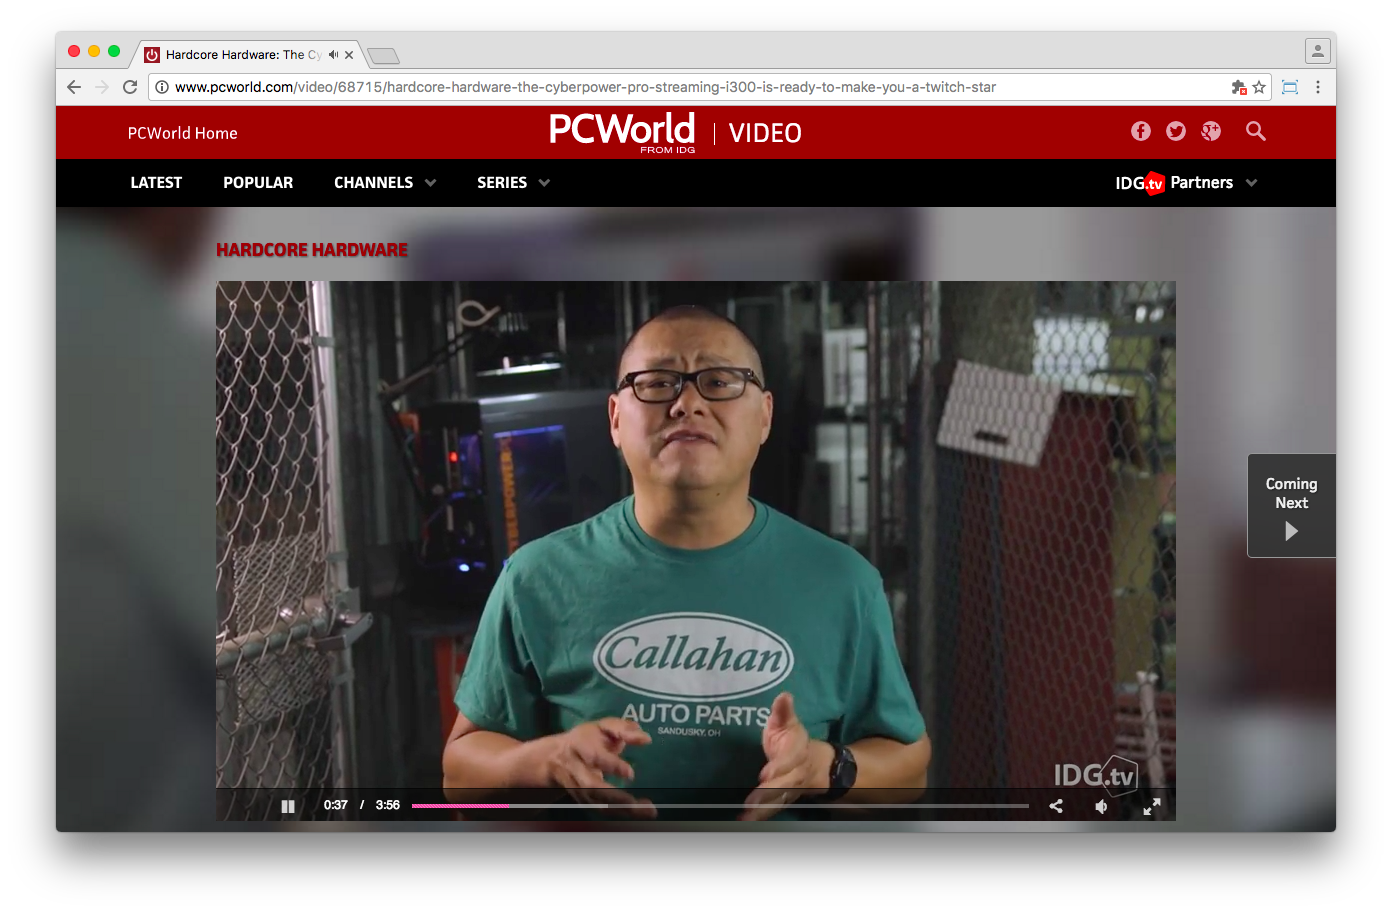 PCWorld's individual videos work without Flash Player